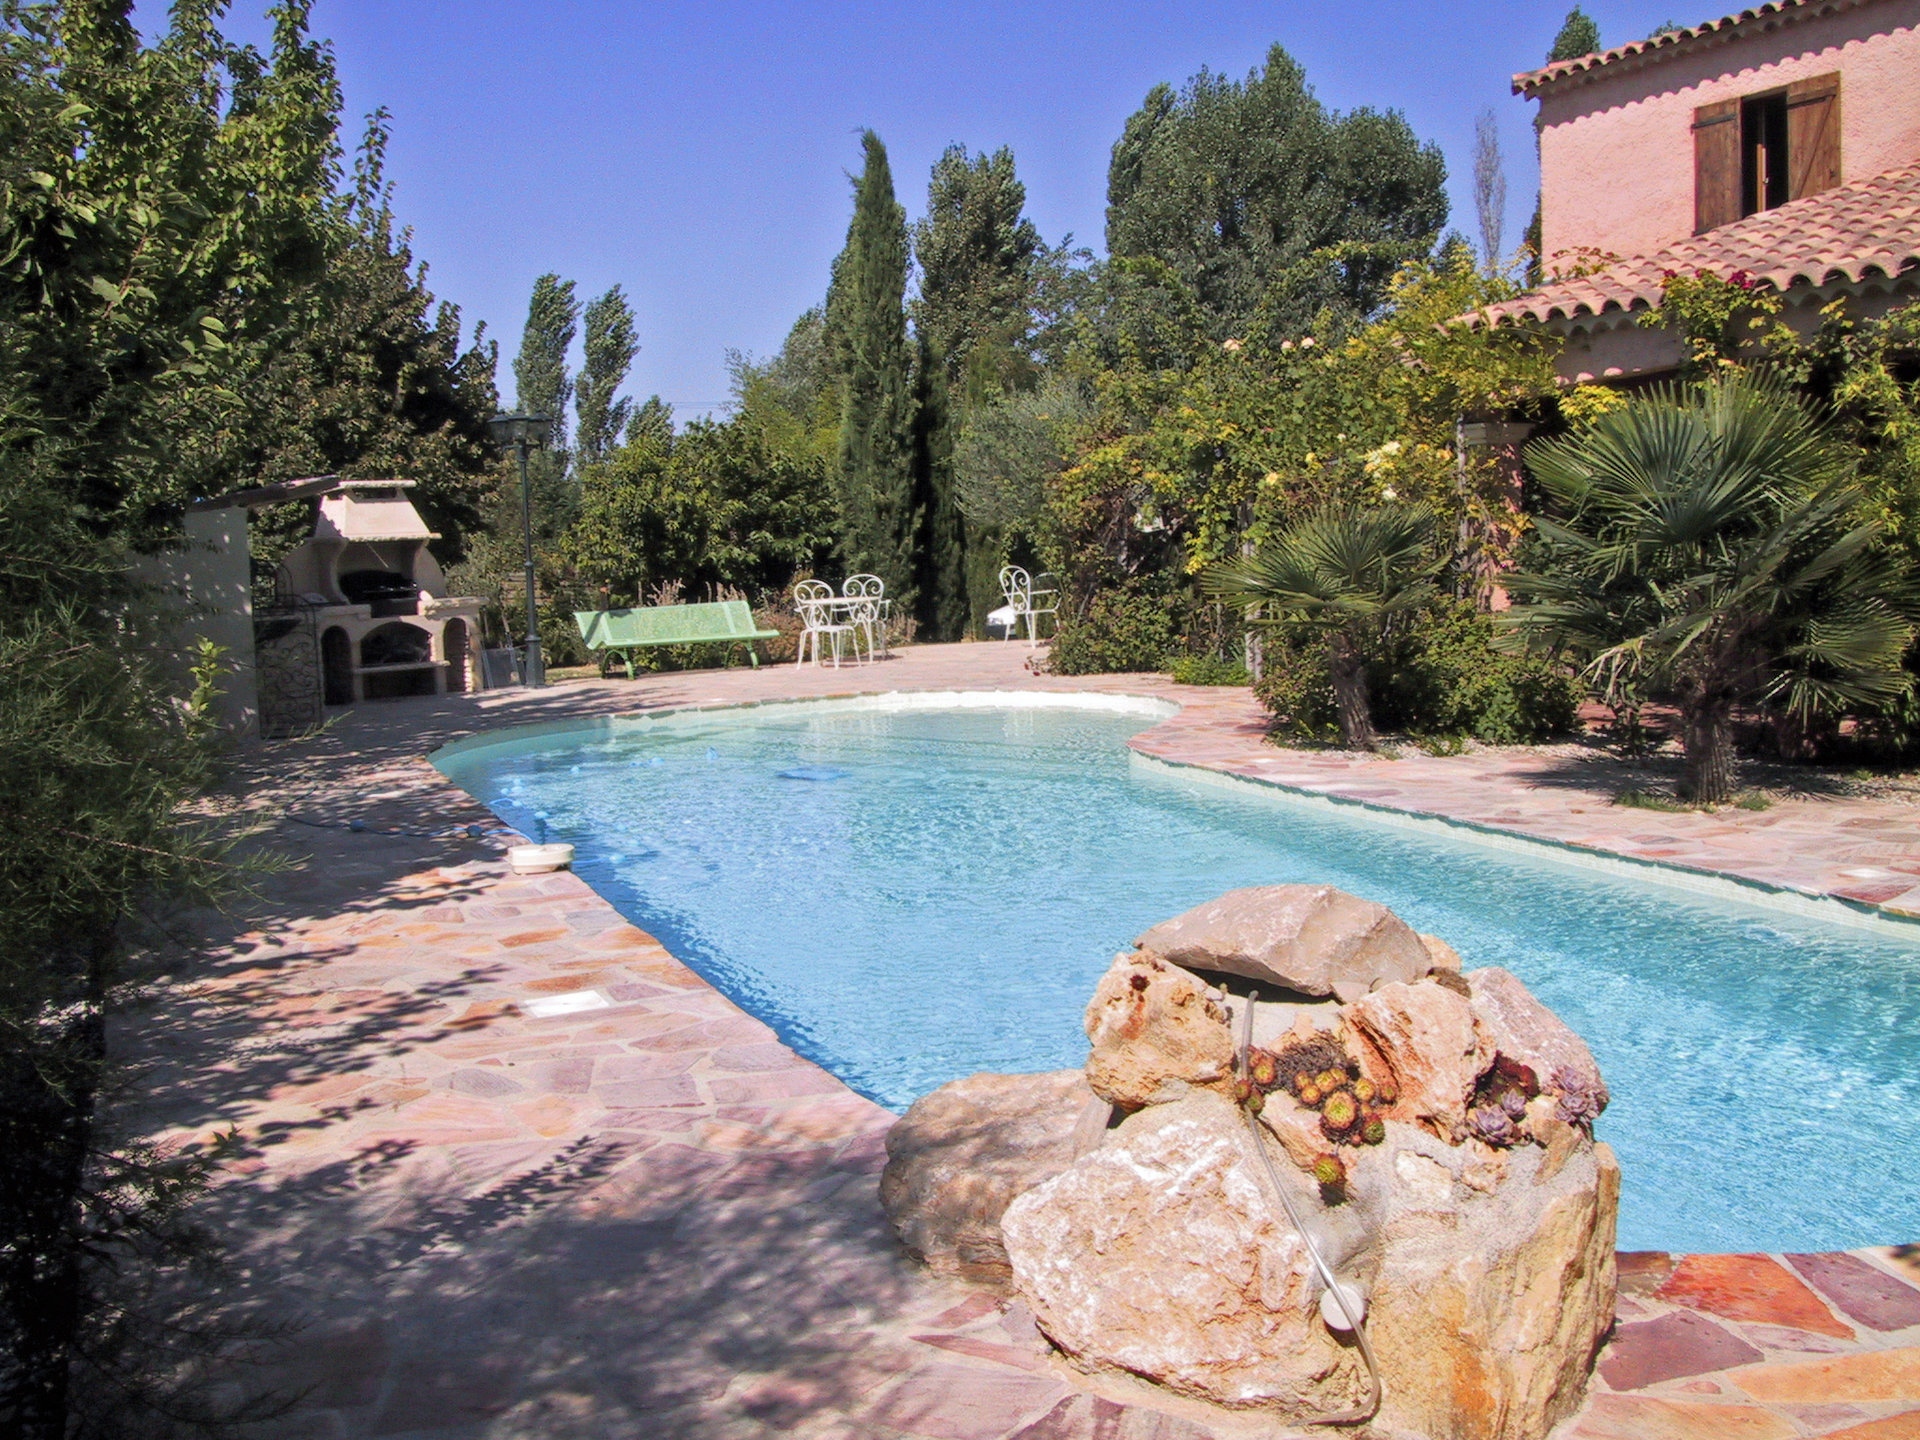 Saint-Antonin, 4 bedroom villa, swimming pool, 2 garages